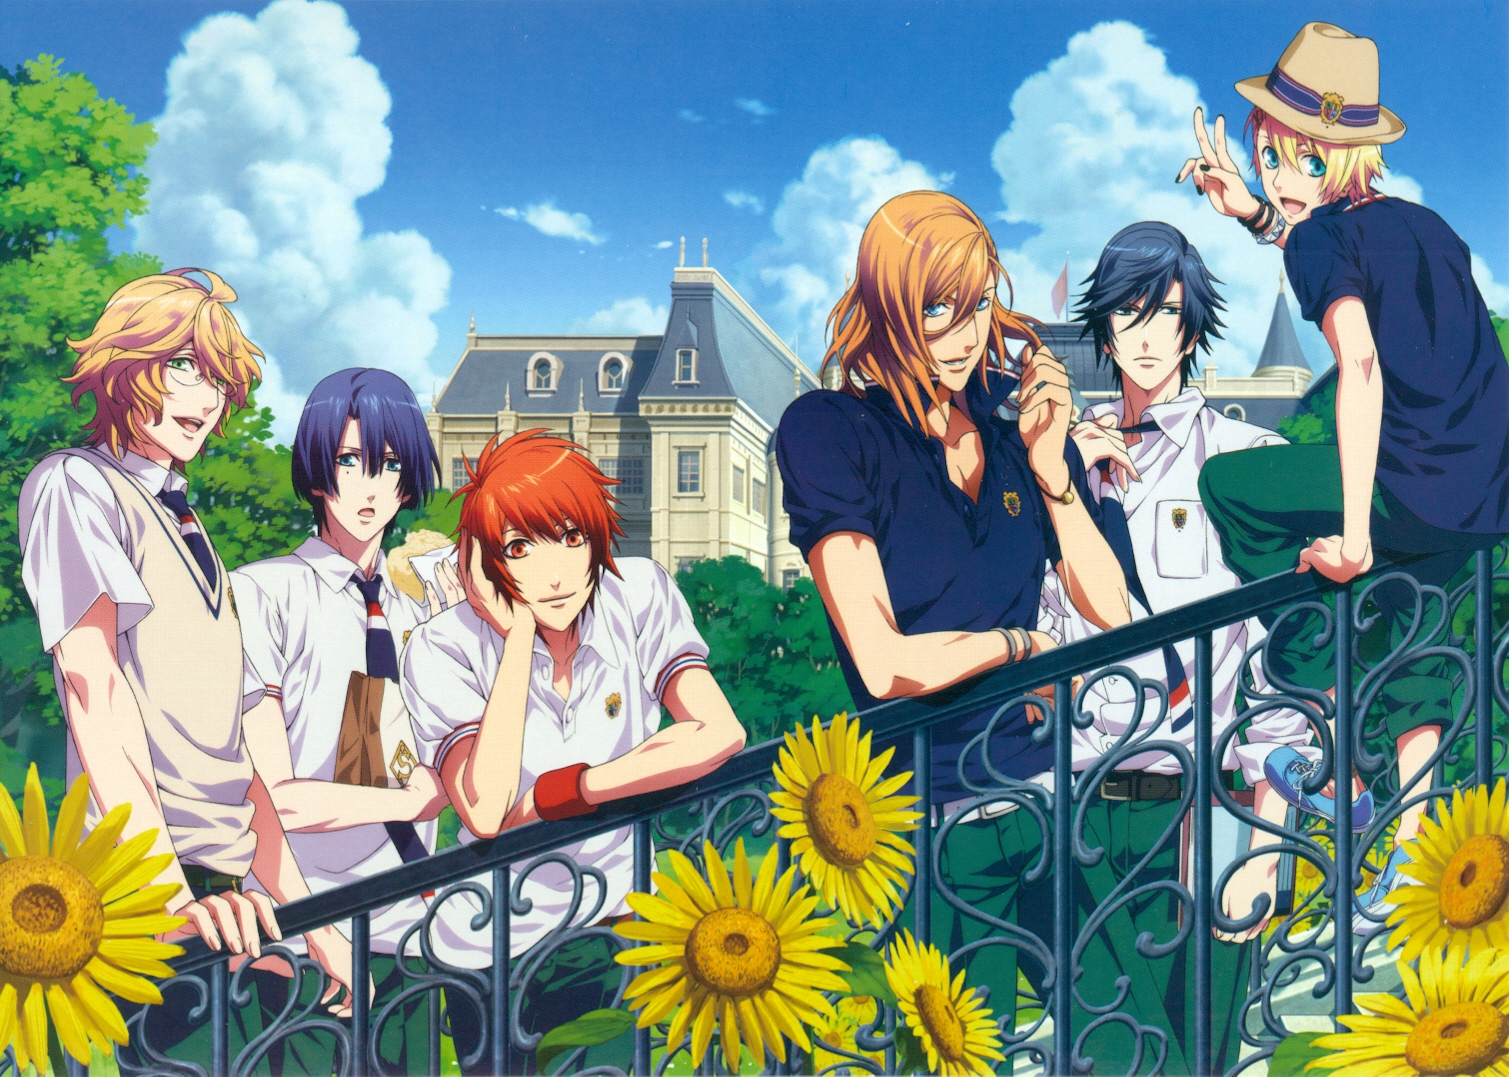 Uta No Prince-sama Backgrounds, Compatible - PC, Mobile, Gadgets| 1509x1077 px